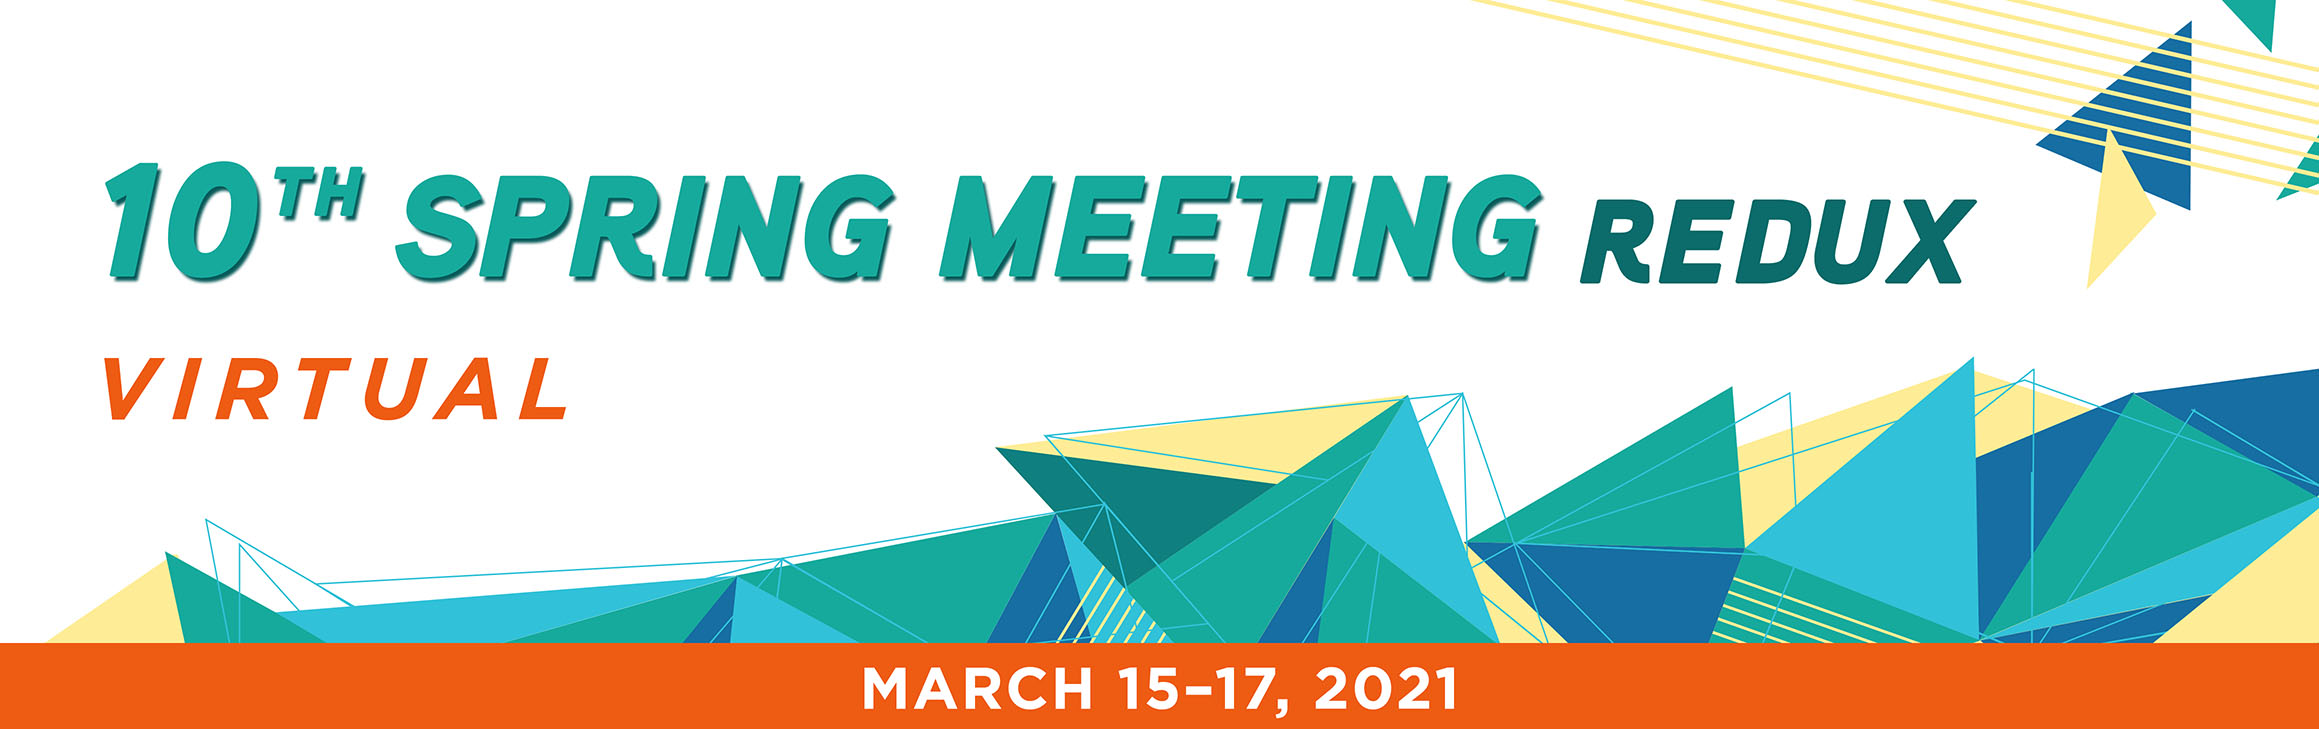 10th Spring Meeting Redux